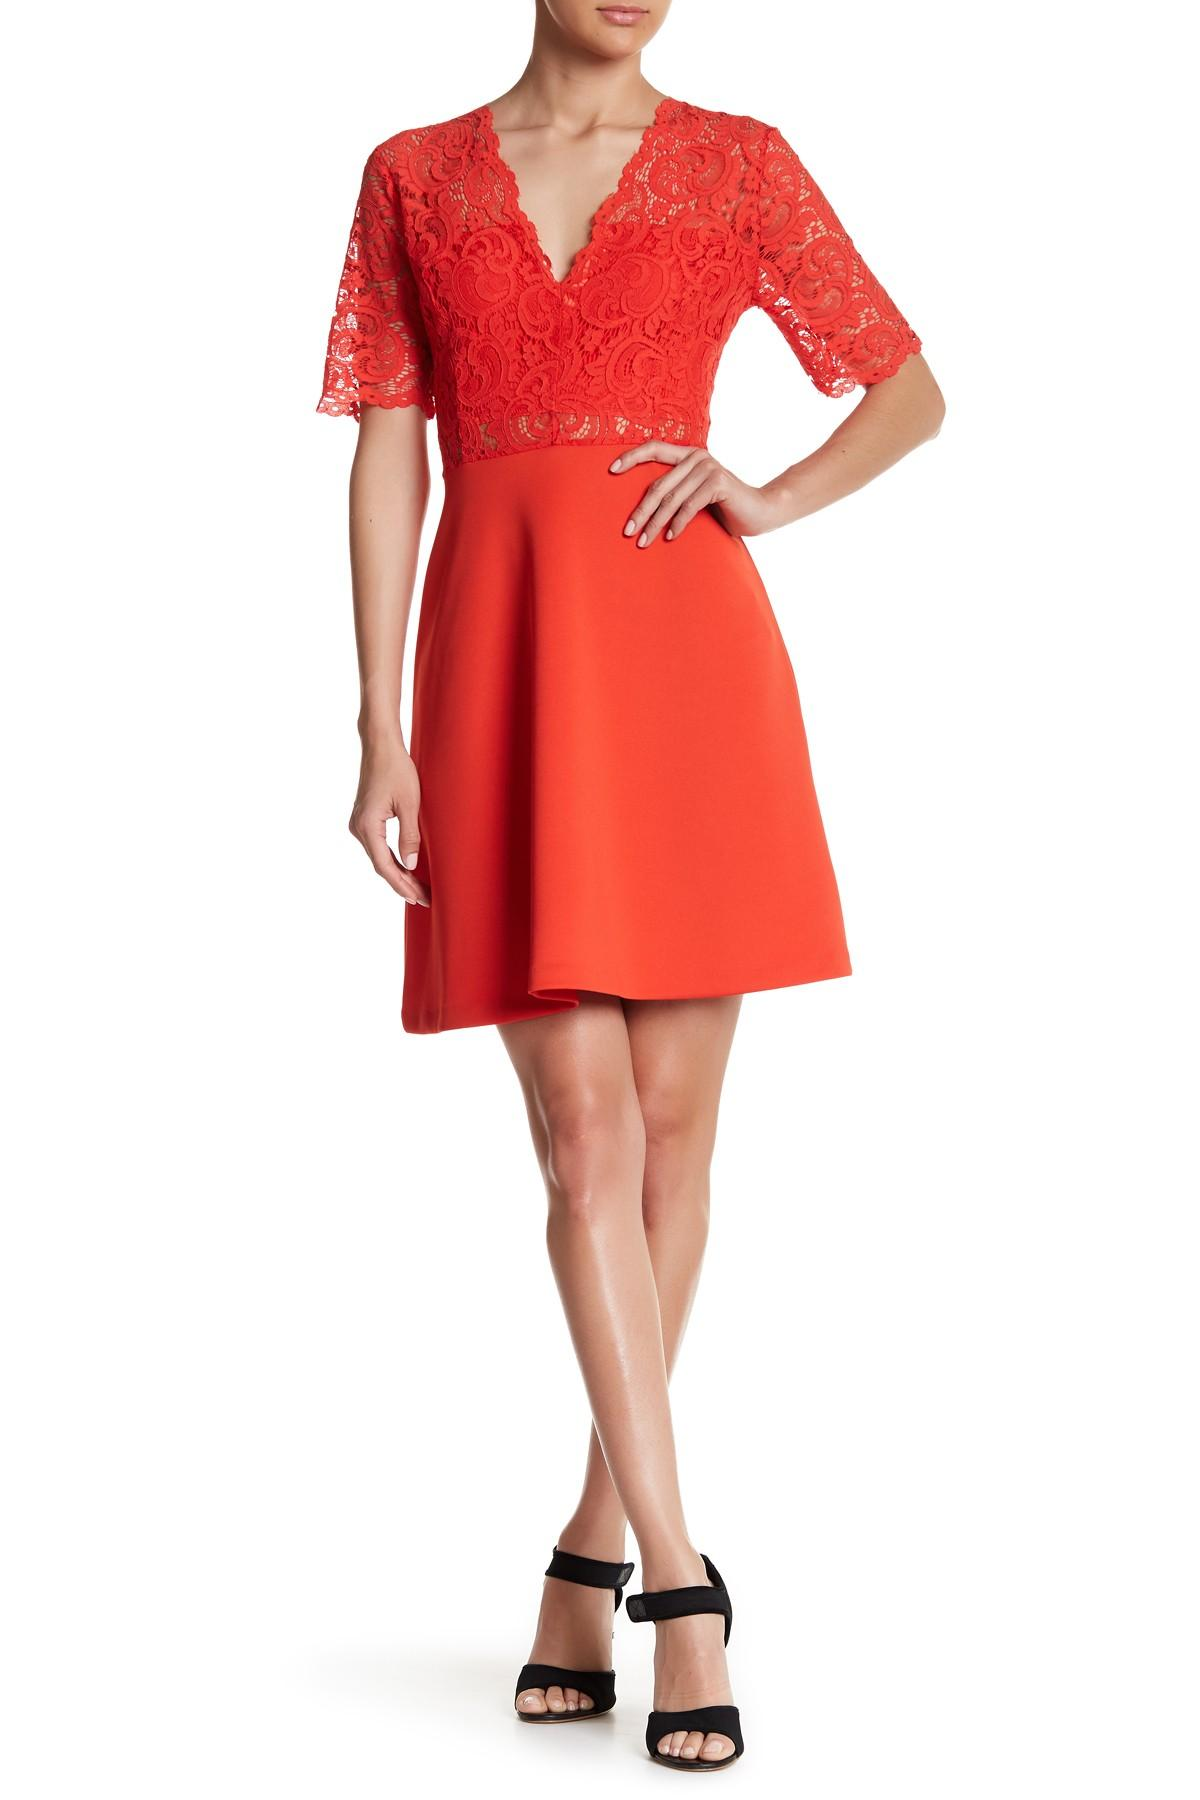 Lyst Alexia Admor Deep V Fit Amp Flare Lace Dress In Red